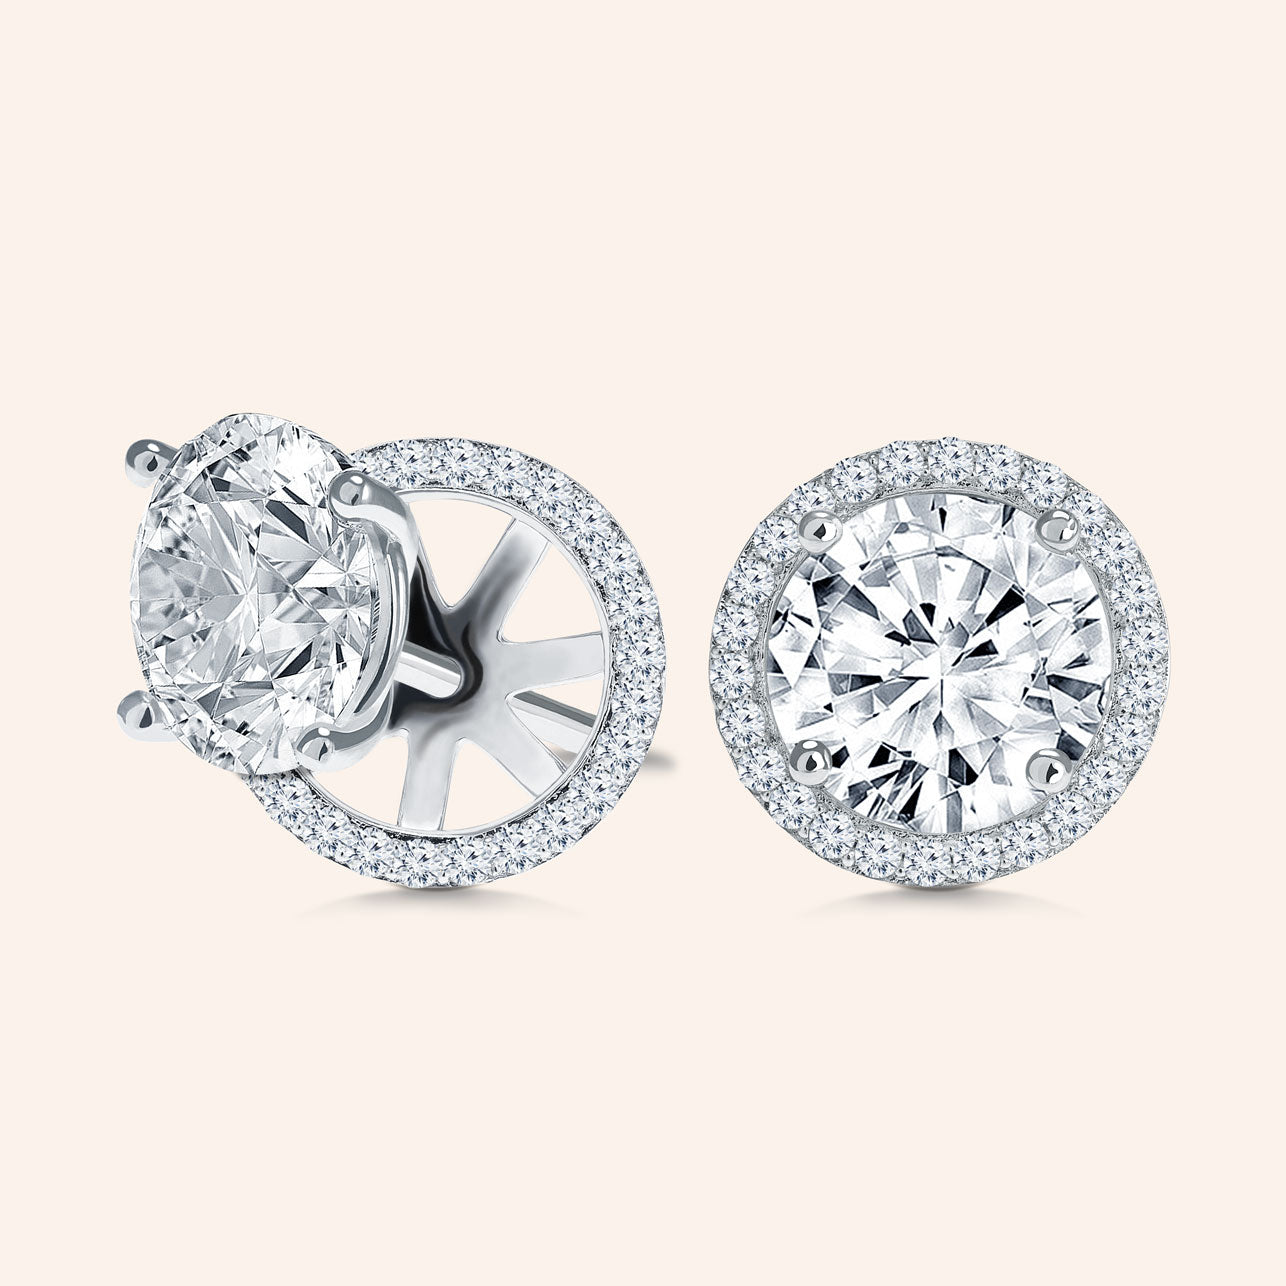 id cut j l halo earrings org sale cushion jewelry for at diamond double stud